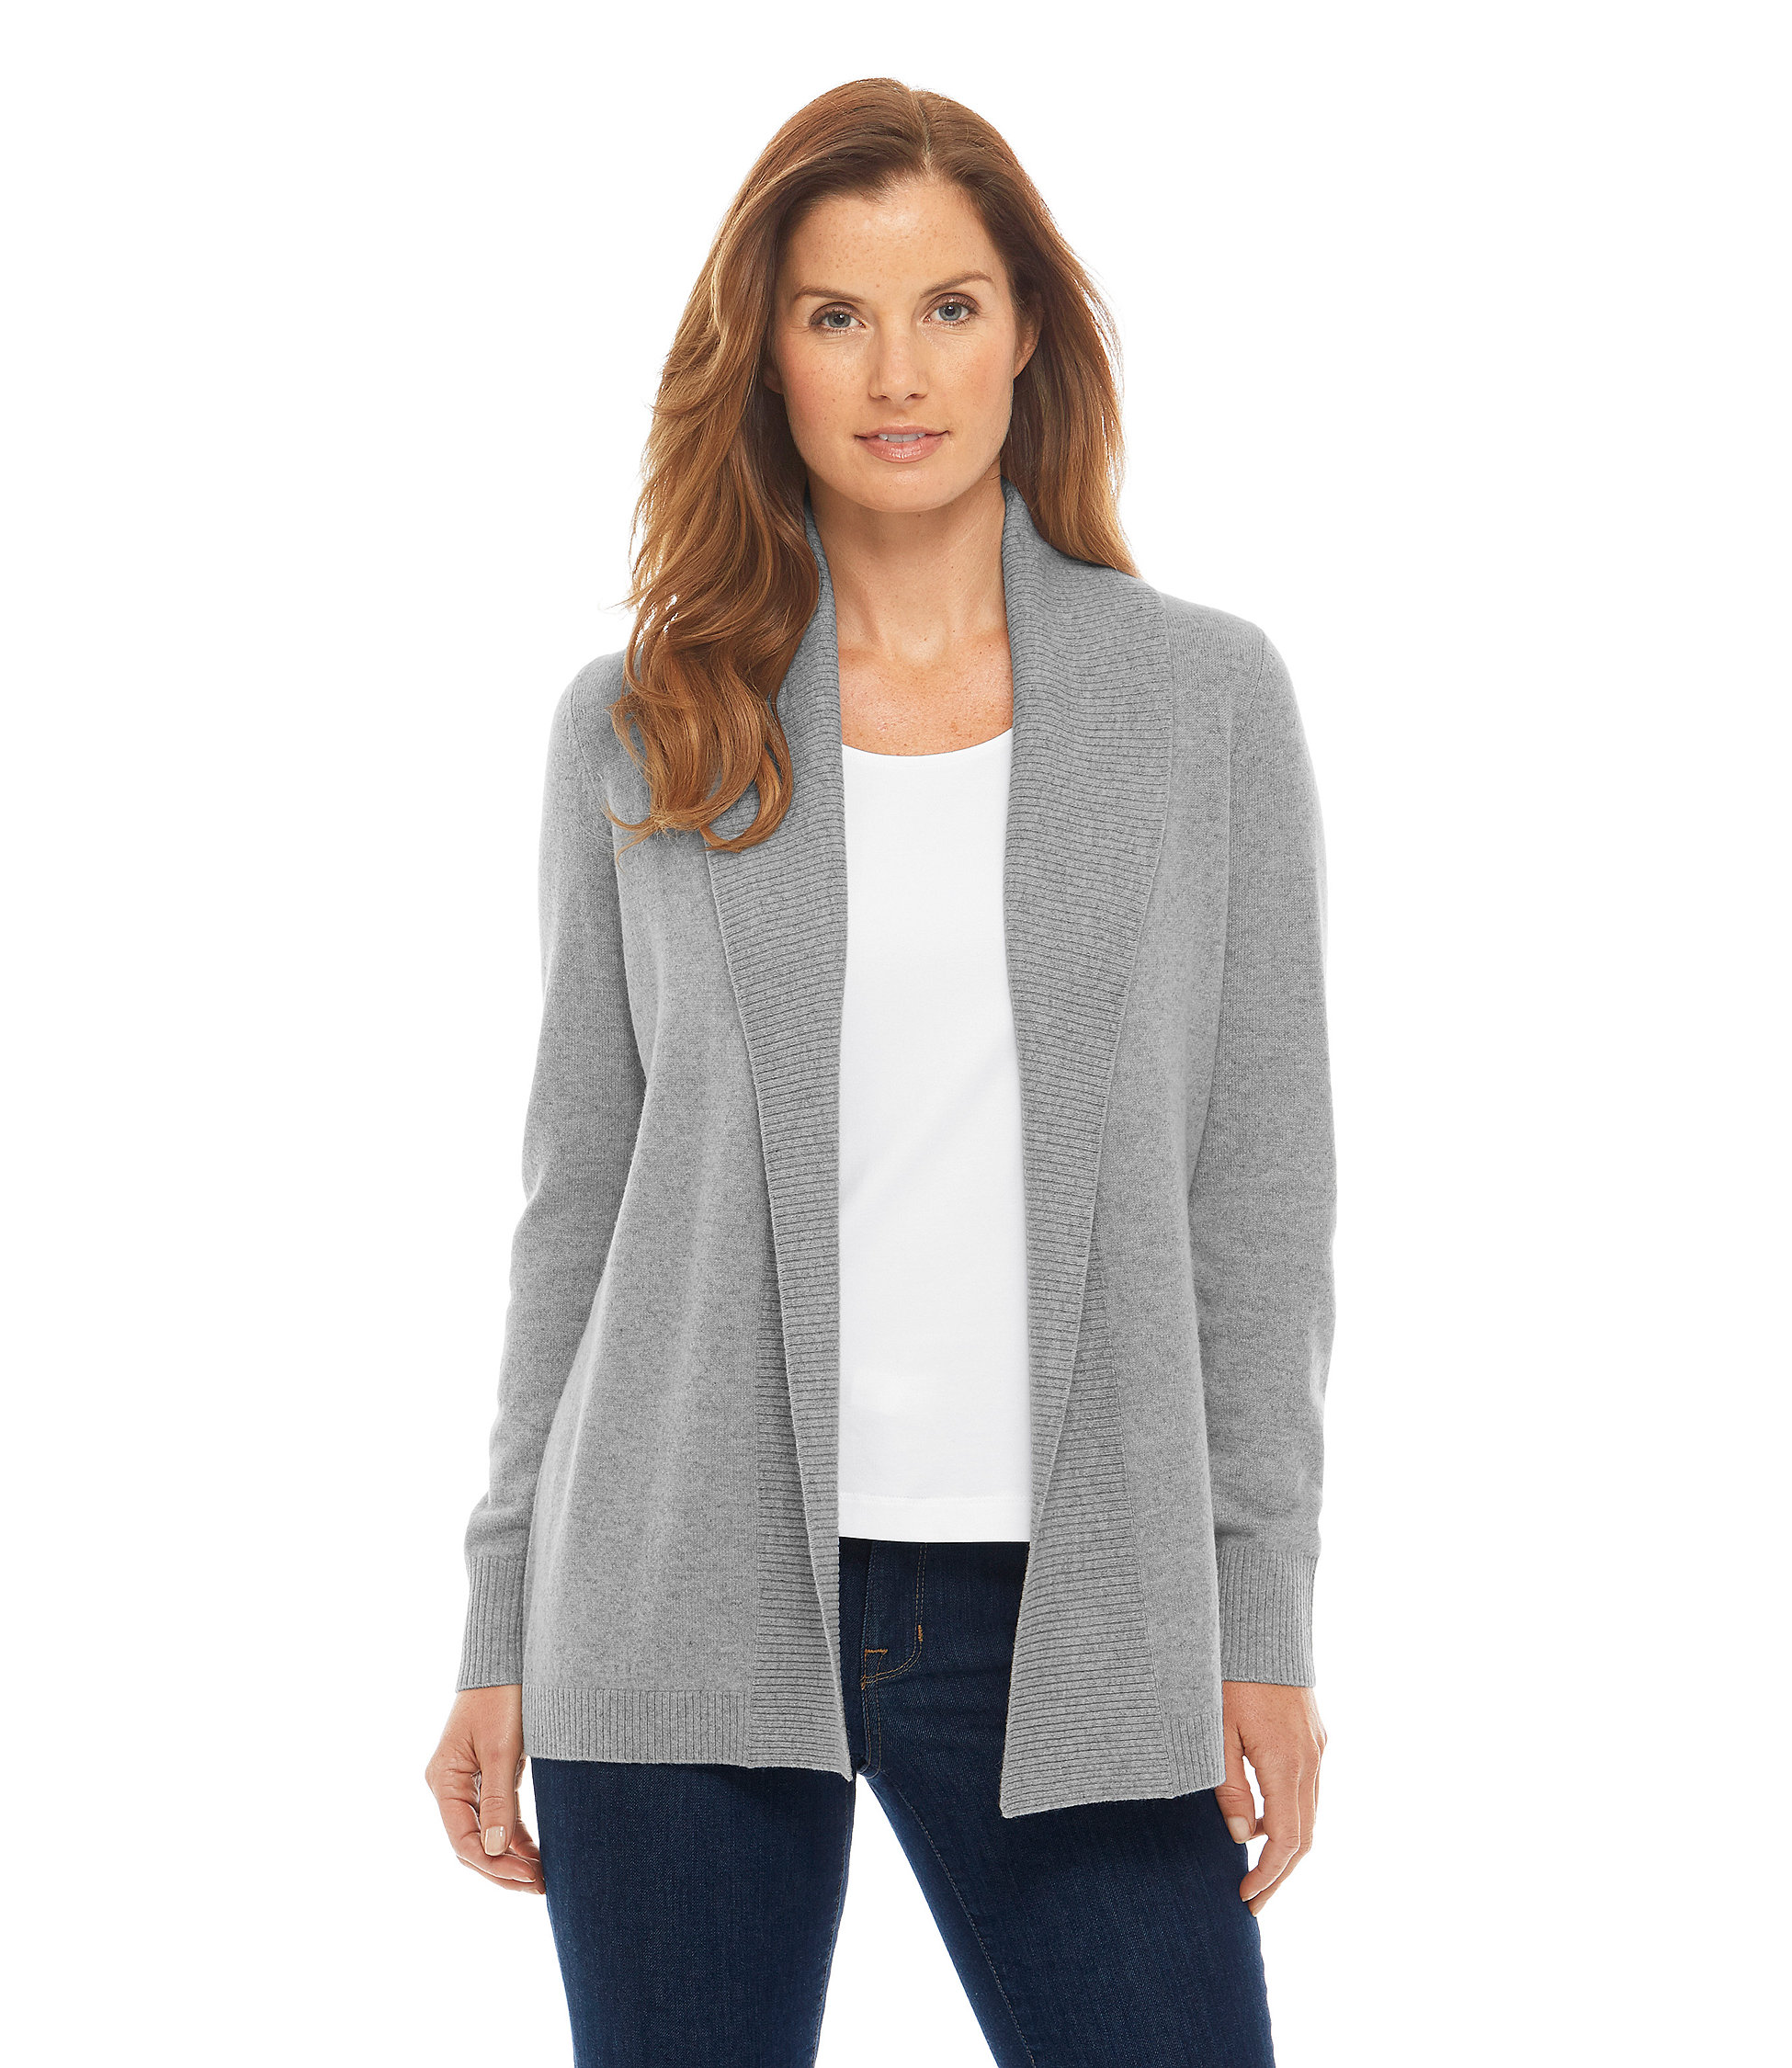 The cashmere cardigan people's choice